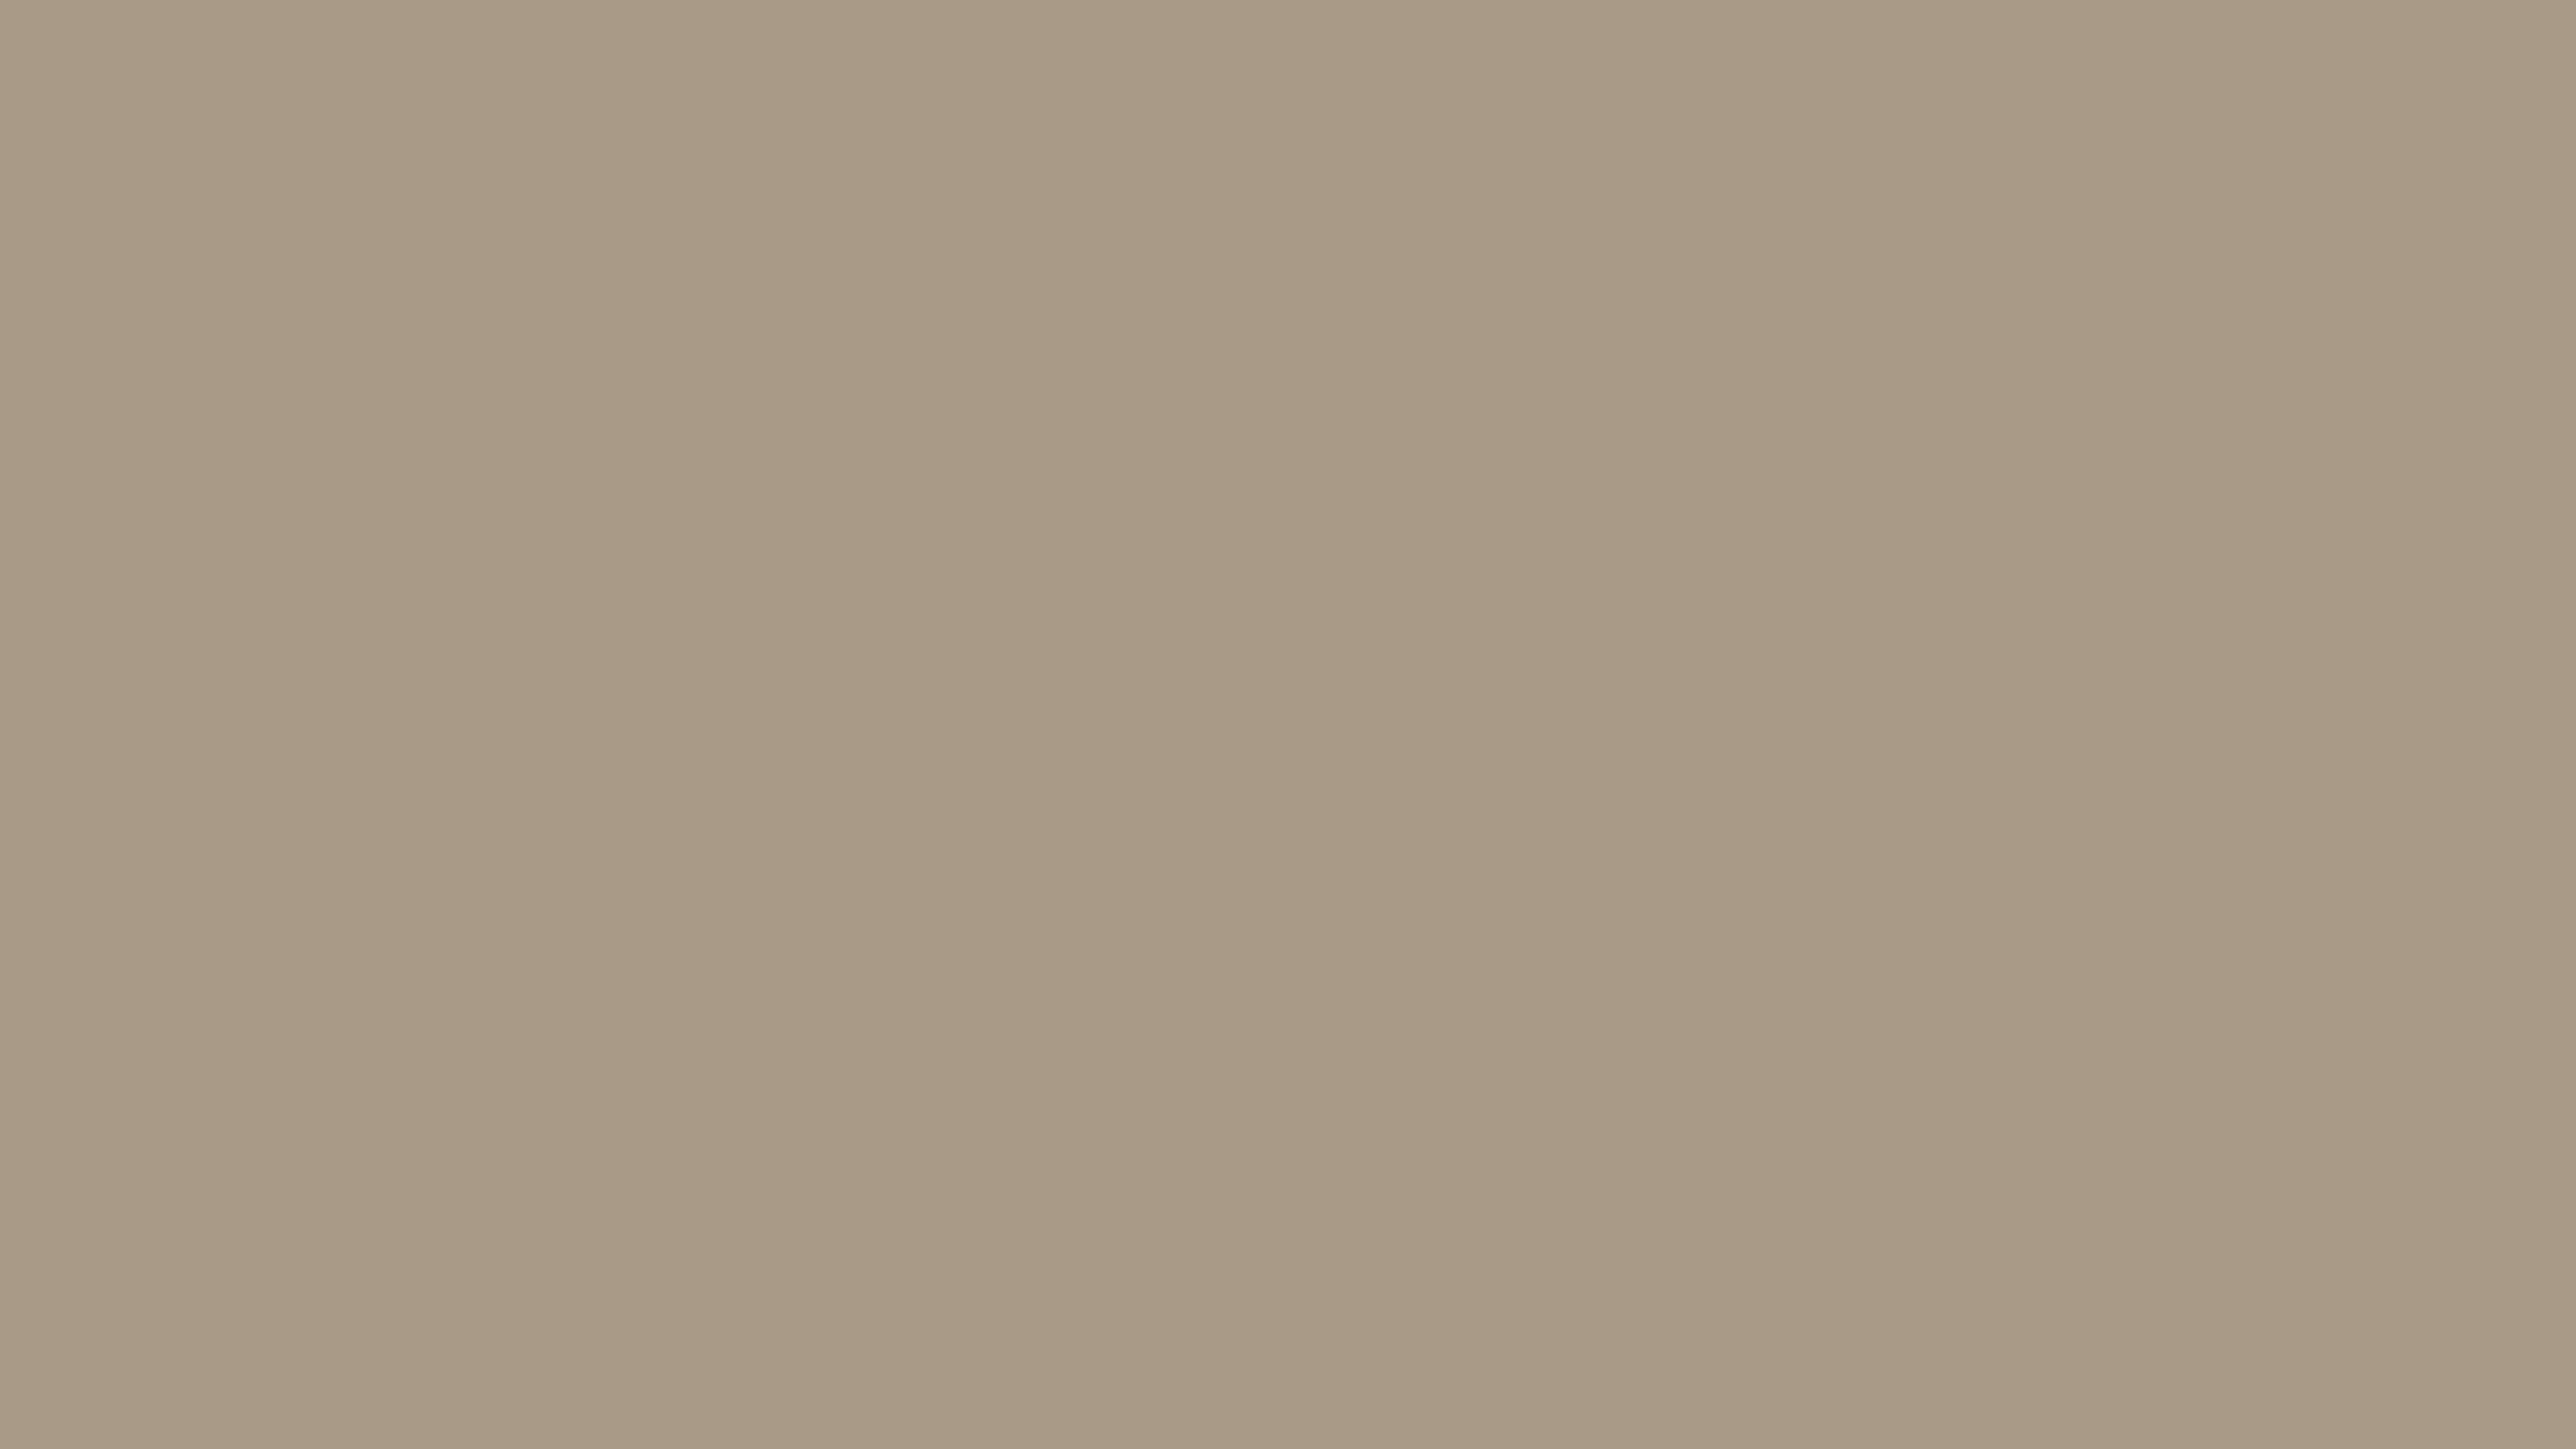 5120x2880 Grullo Solid Color Background